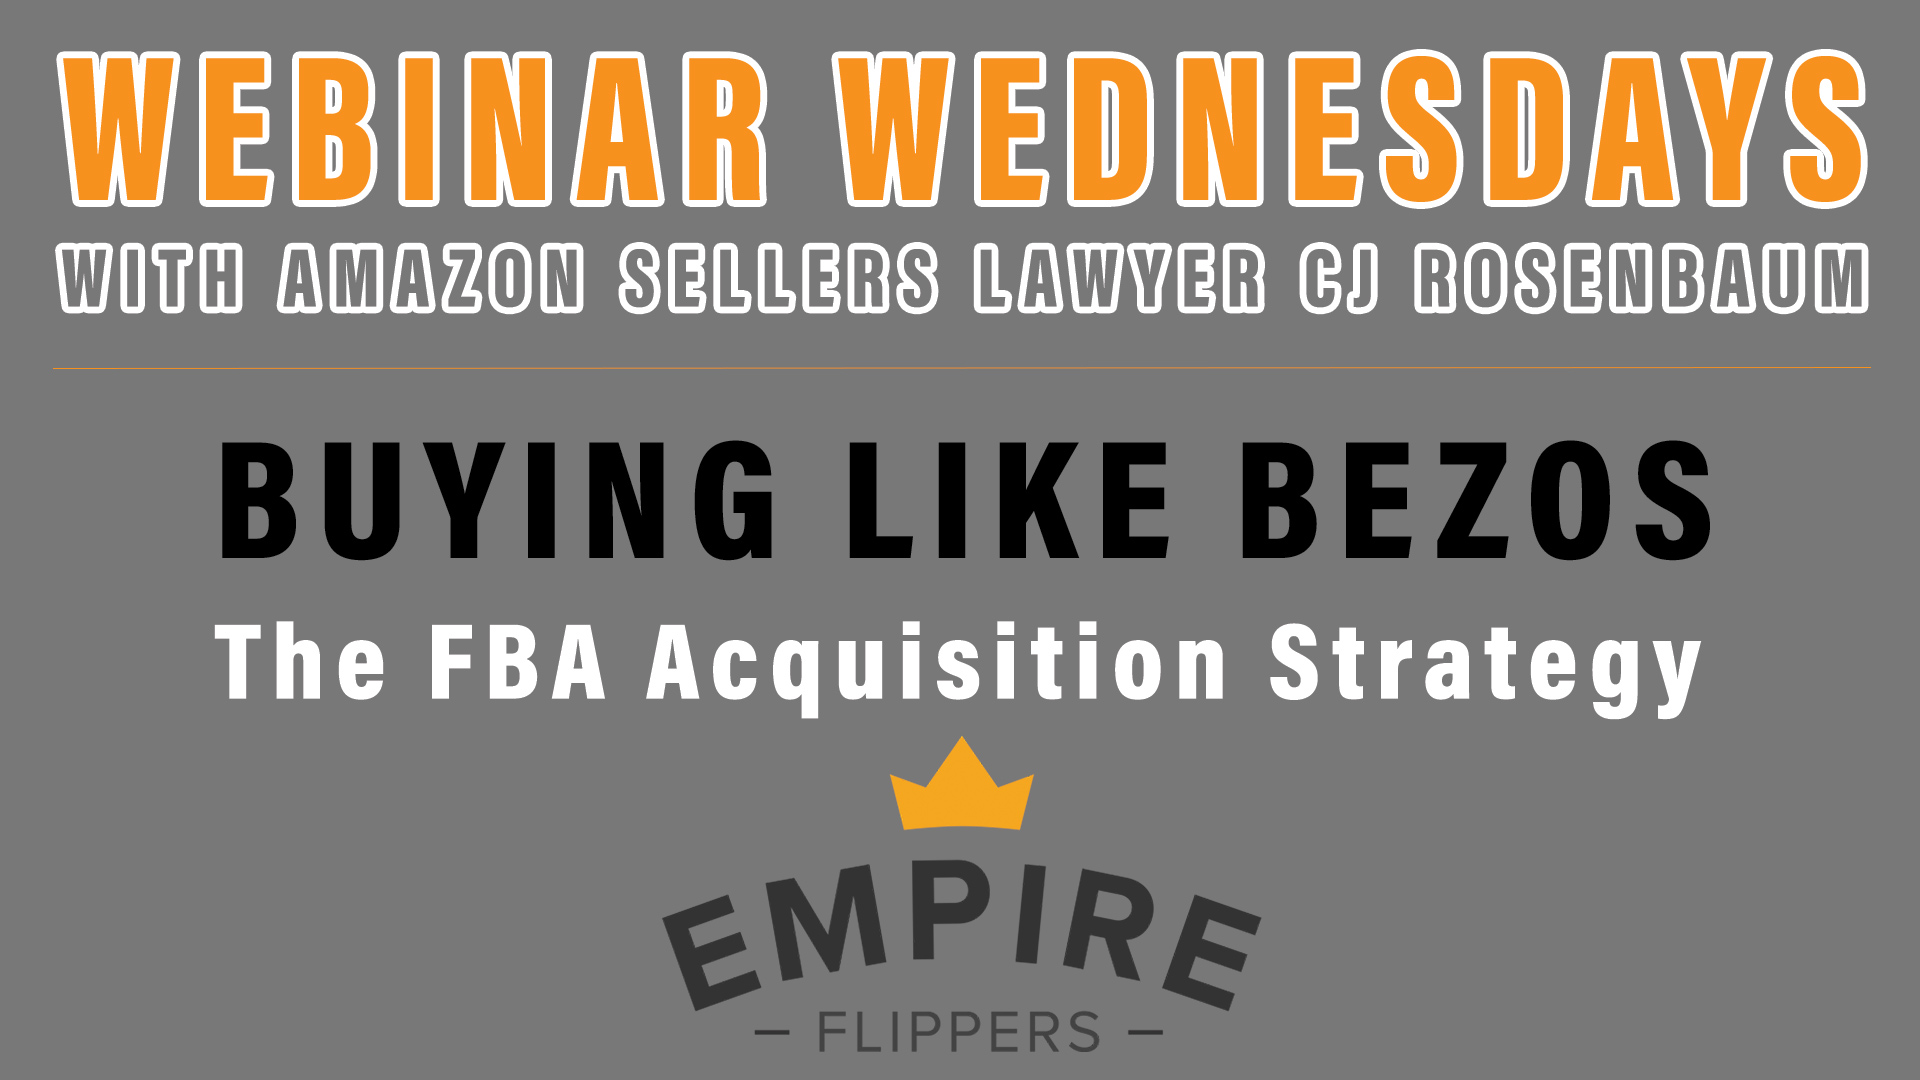 Buying Like Bezos - The FBA Acquisition Strategy